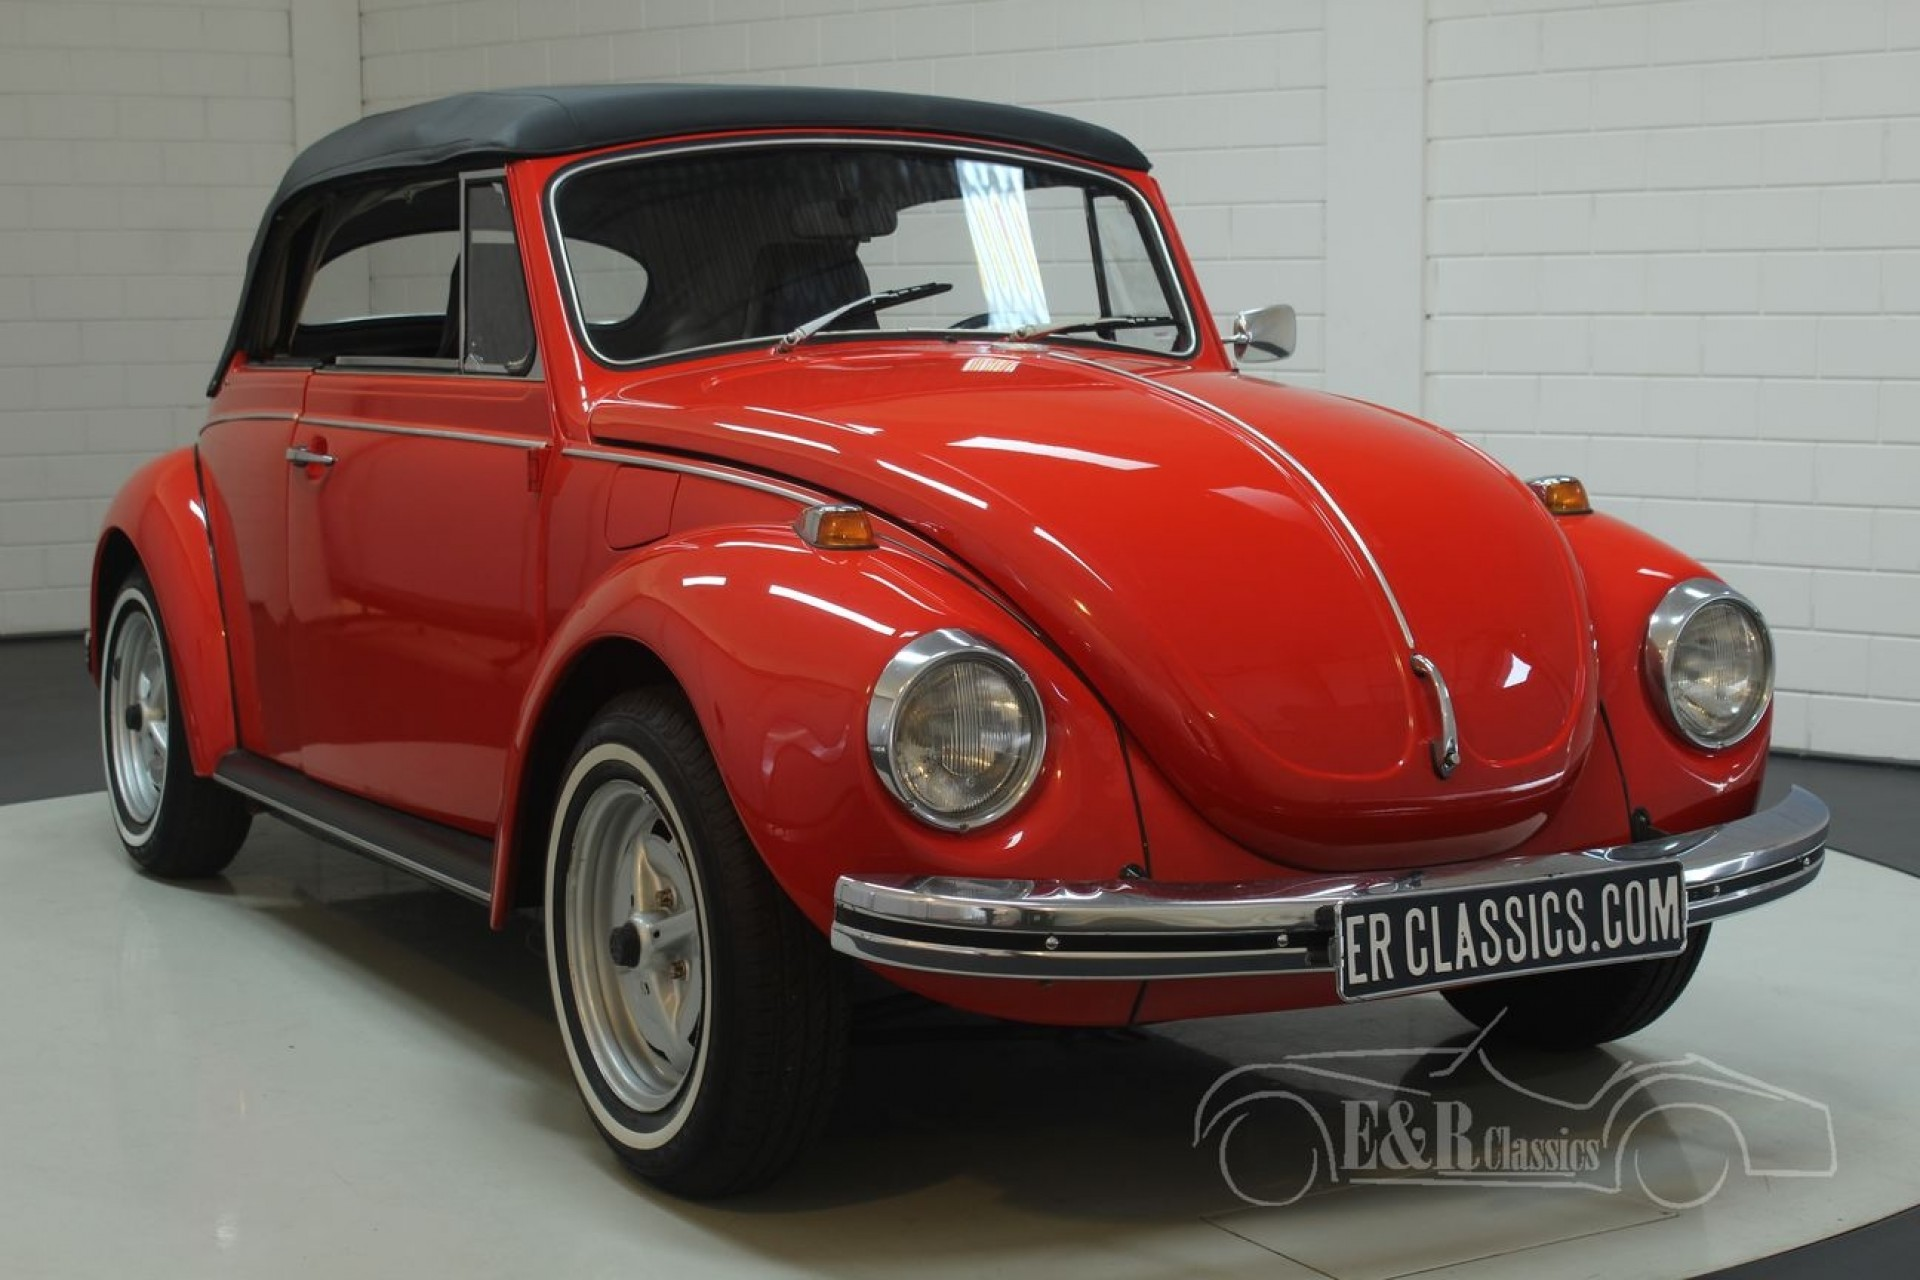 VW Beetle cabriolet 1970 for sale at Erclassics